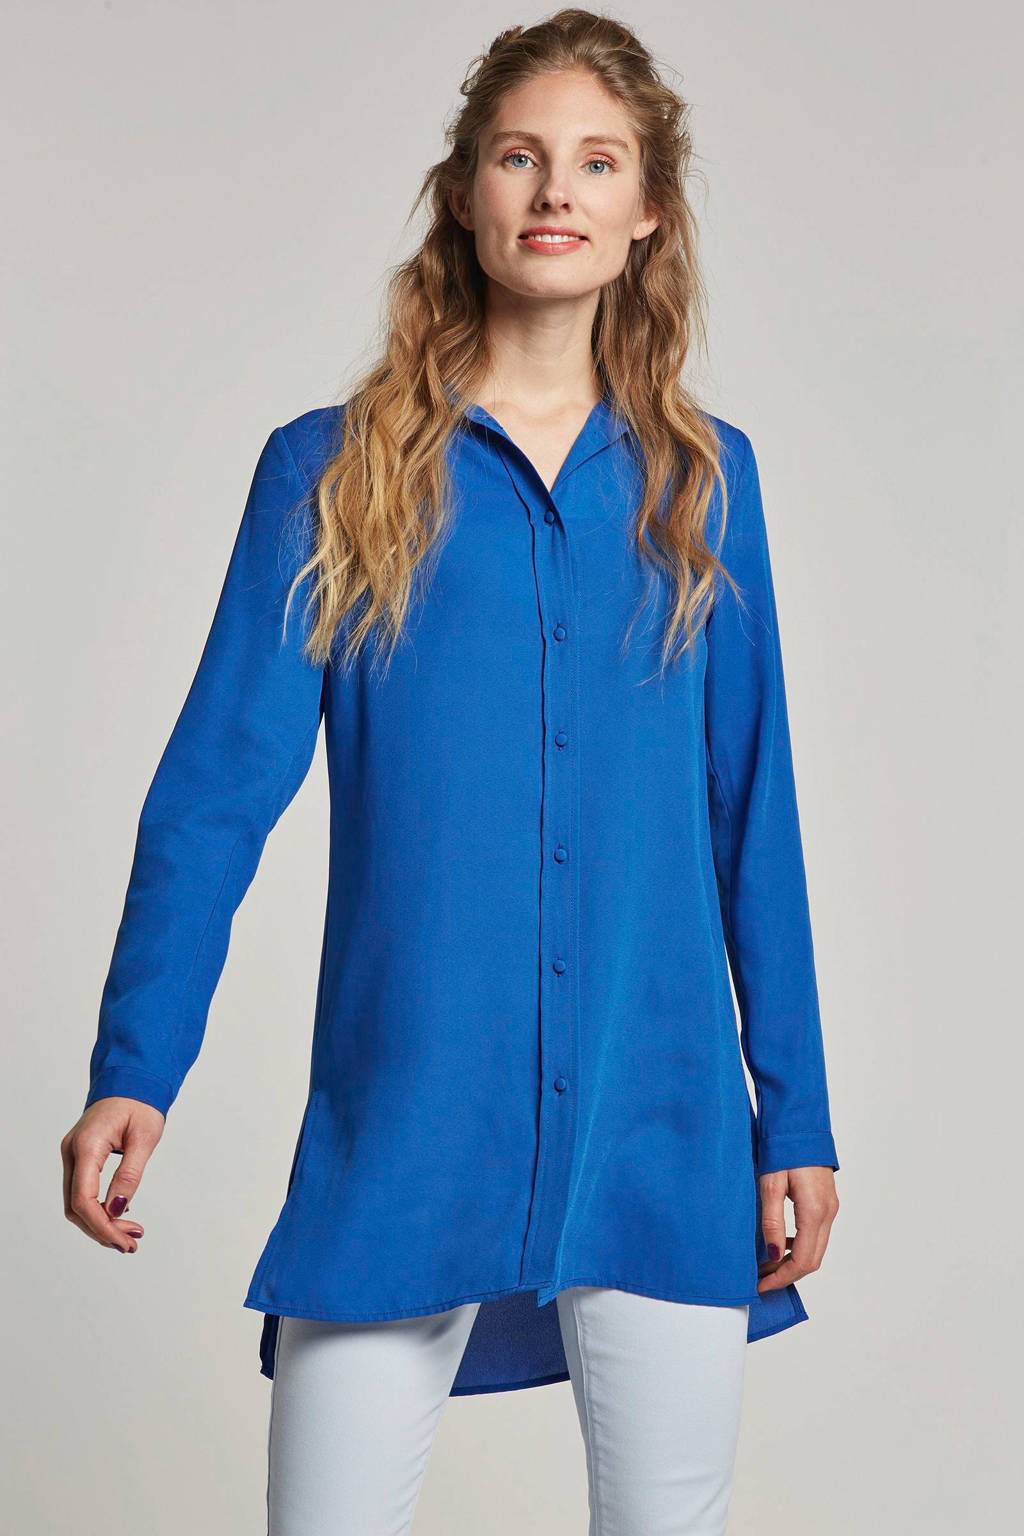 whkmp's own gerecycled polyester blouse (Waste2Wear), Kobaltblauw